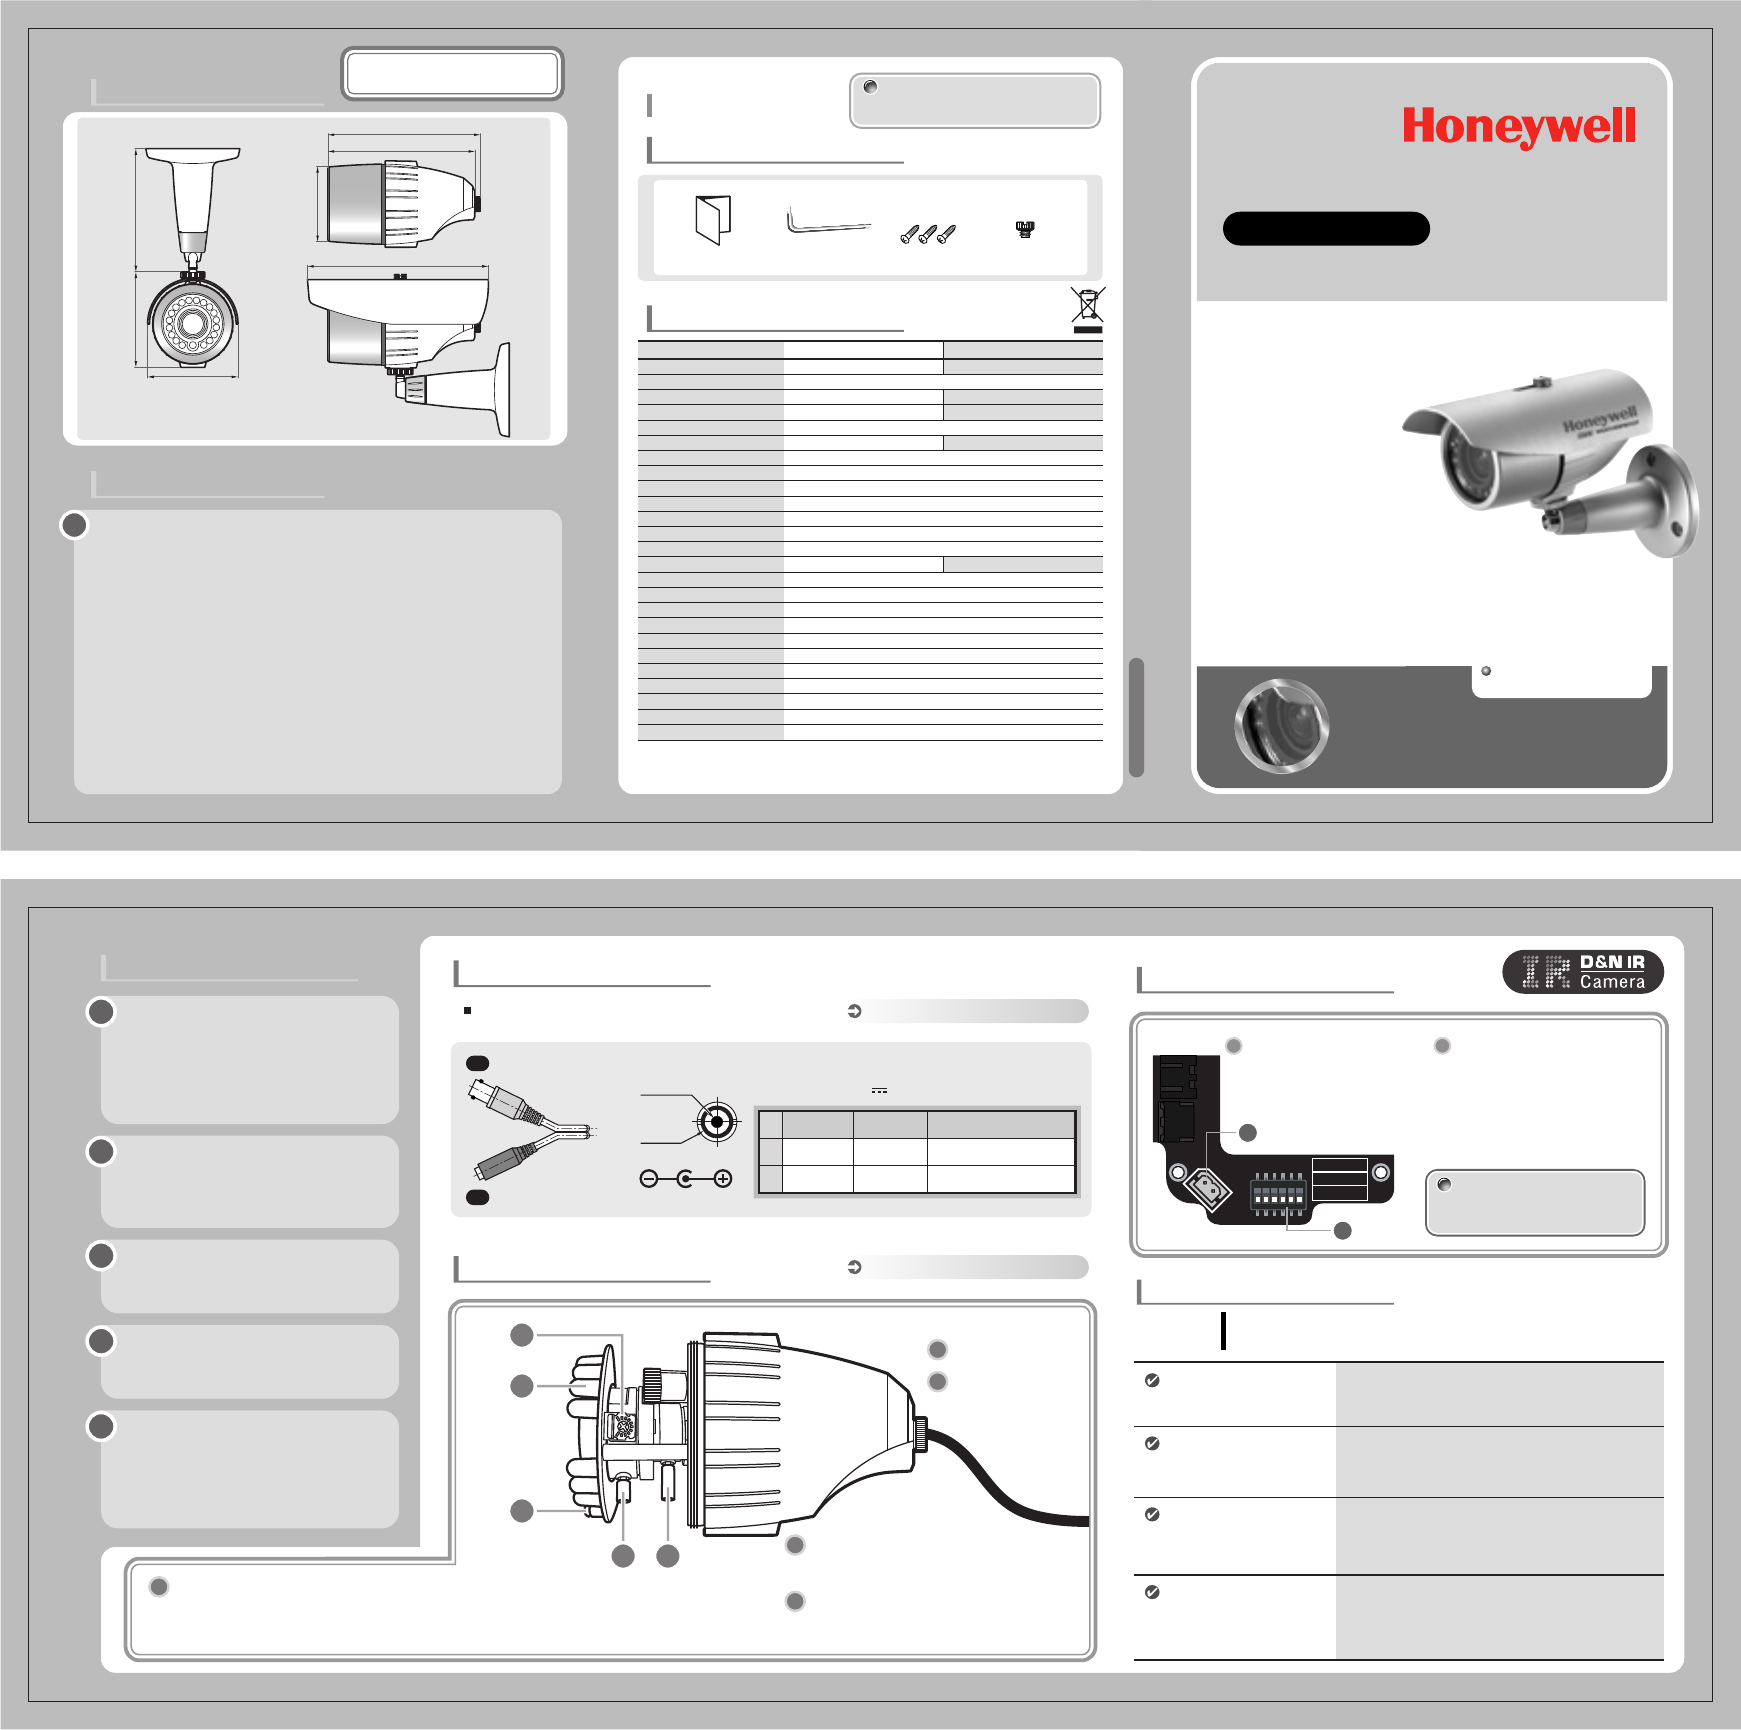 Honeywell Home Security System HB73 User Guide | ManualsOnline